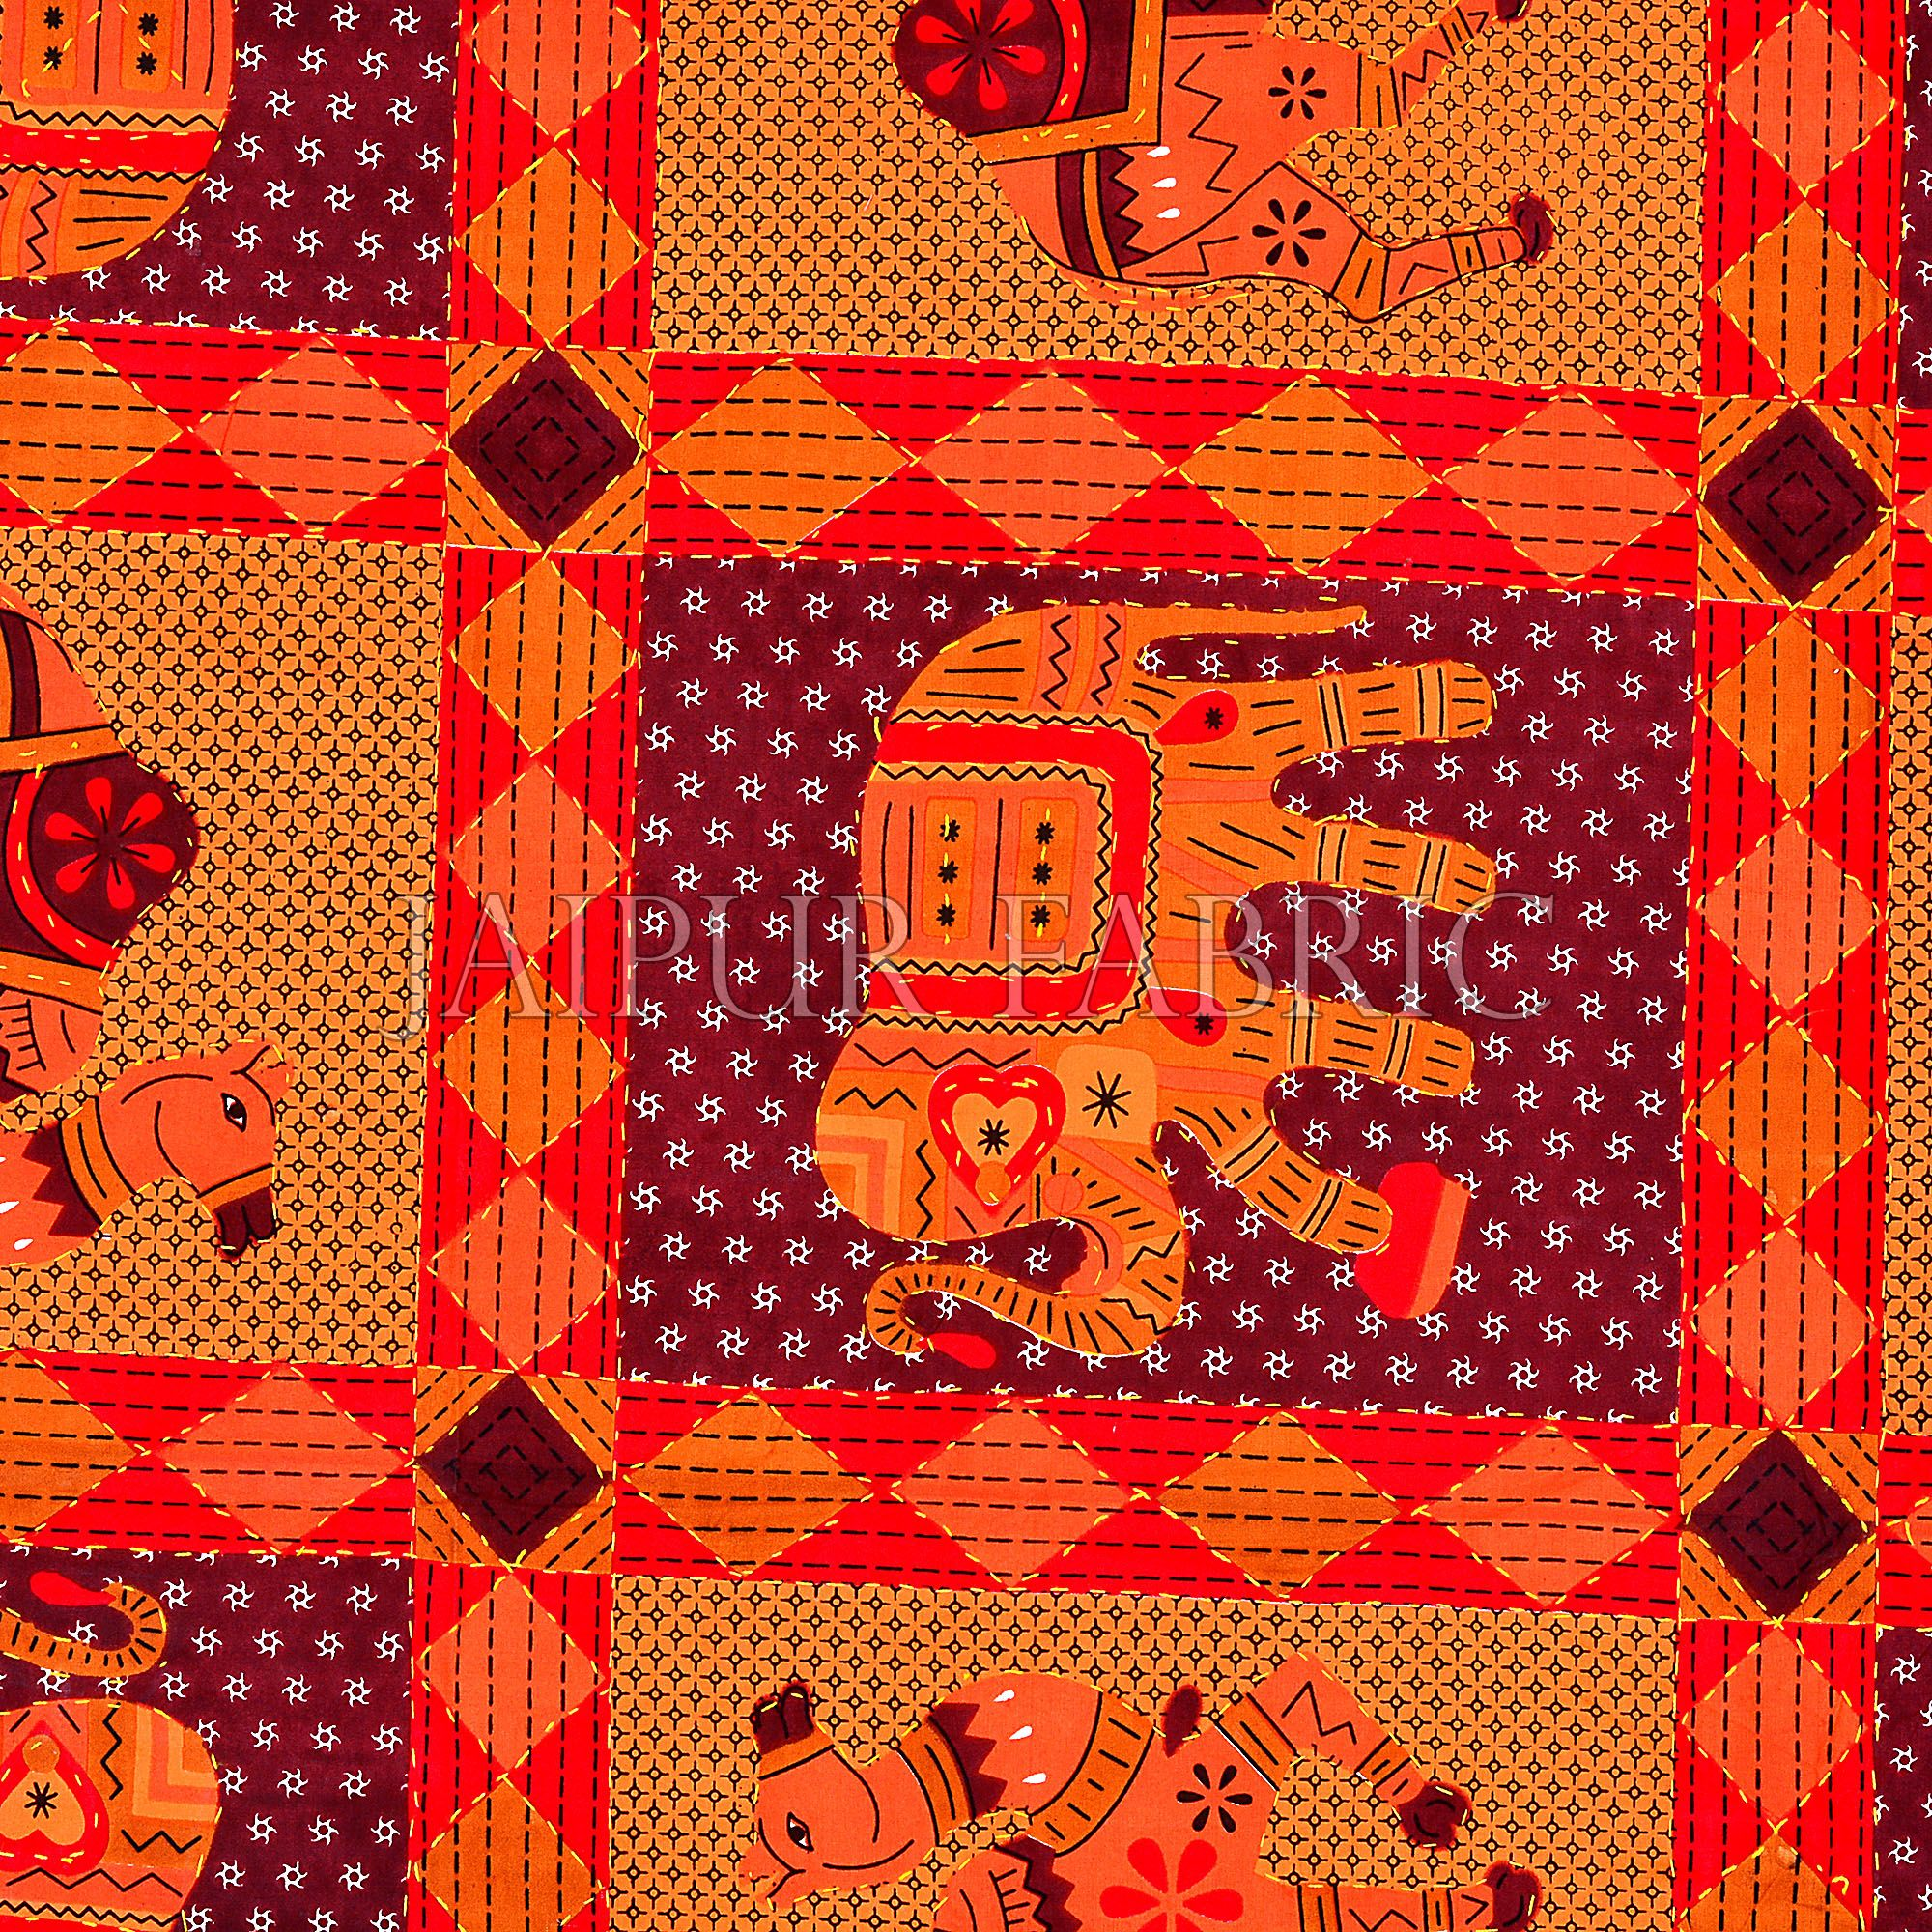 Red Jaisalmer Handmade Embroidery with katha Thread Work Elephant Print Double Bed Sheet with Two Pillow Covers